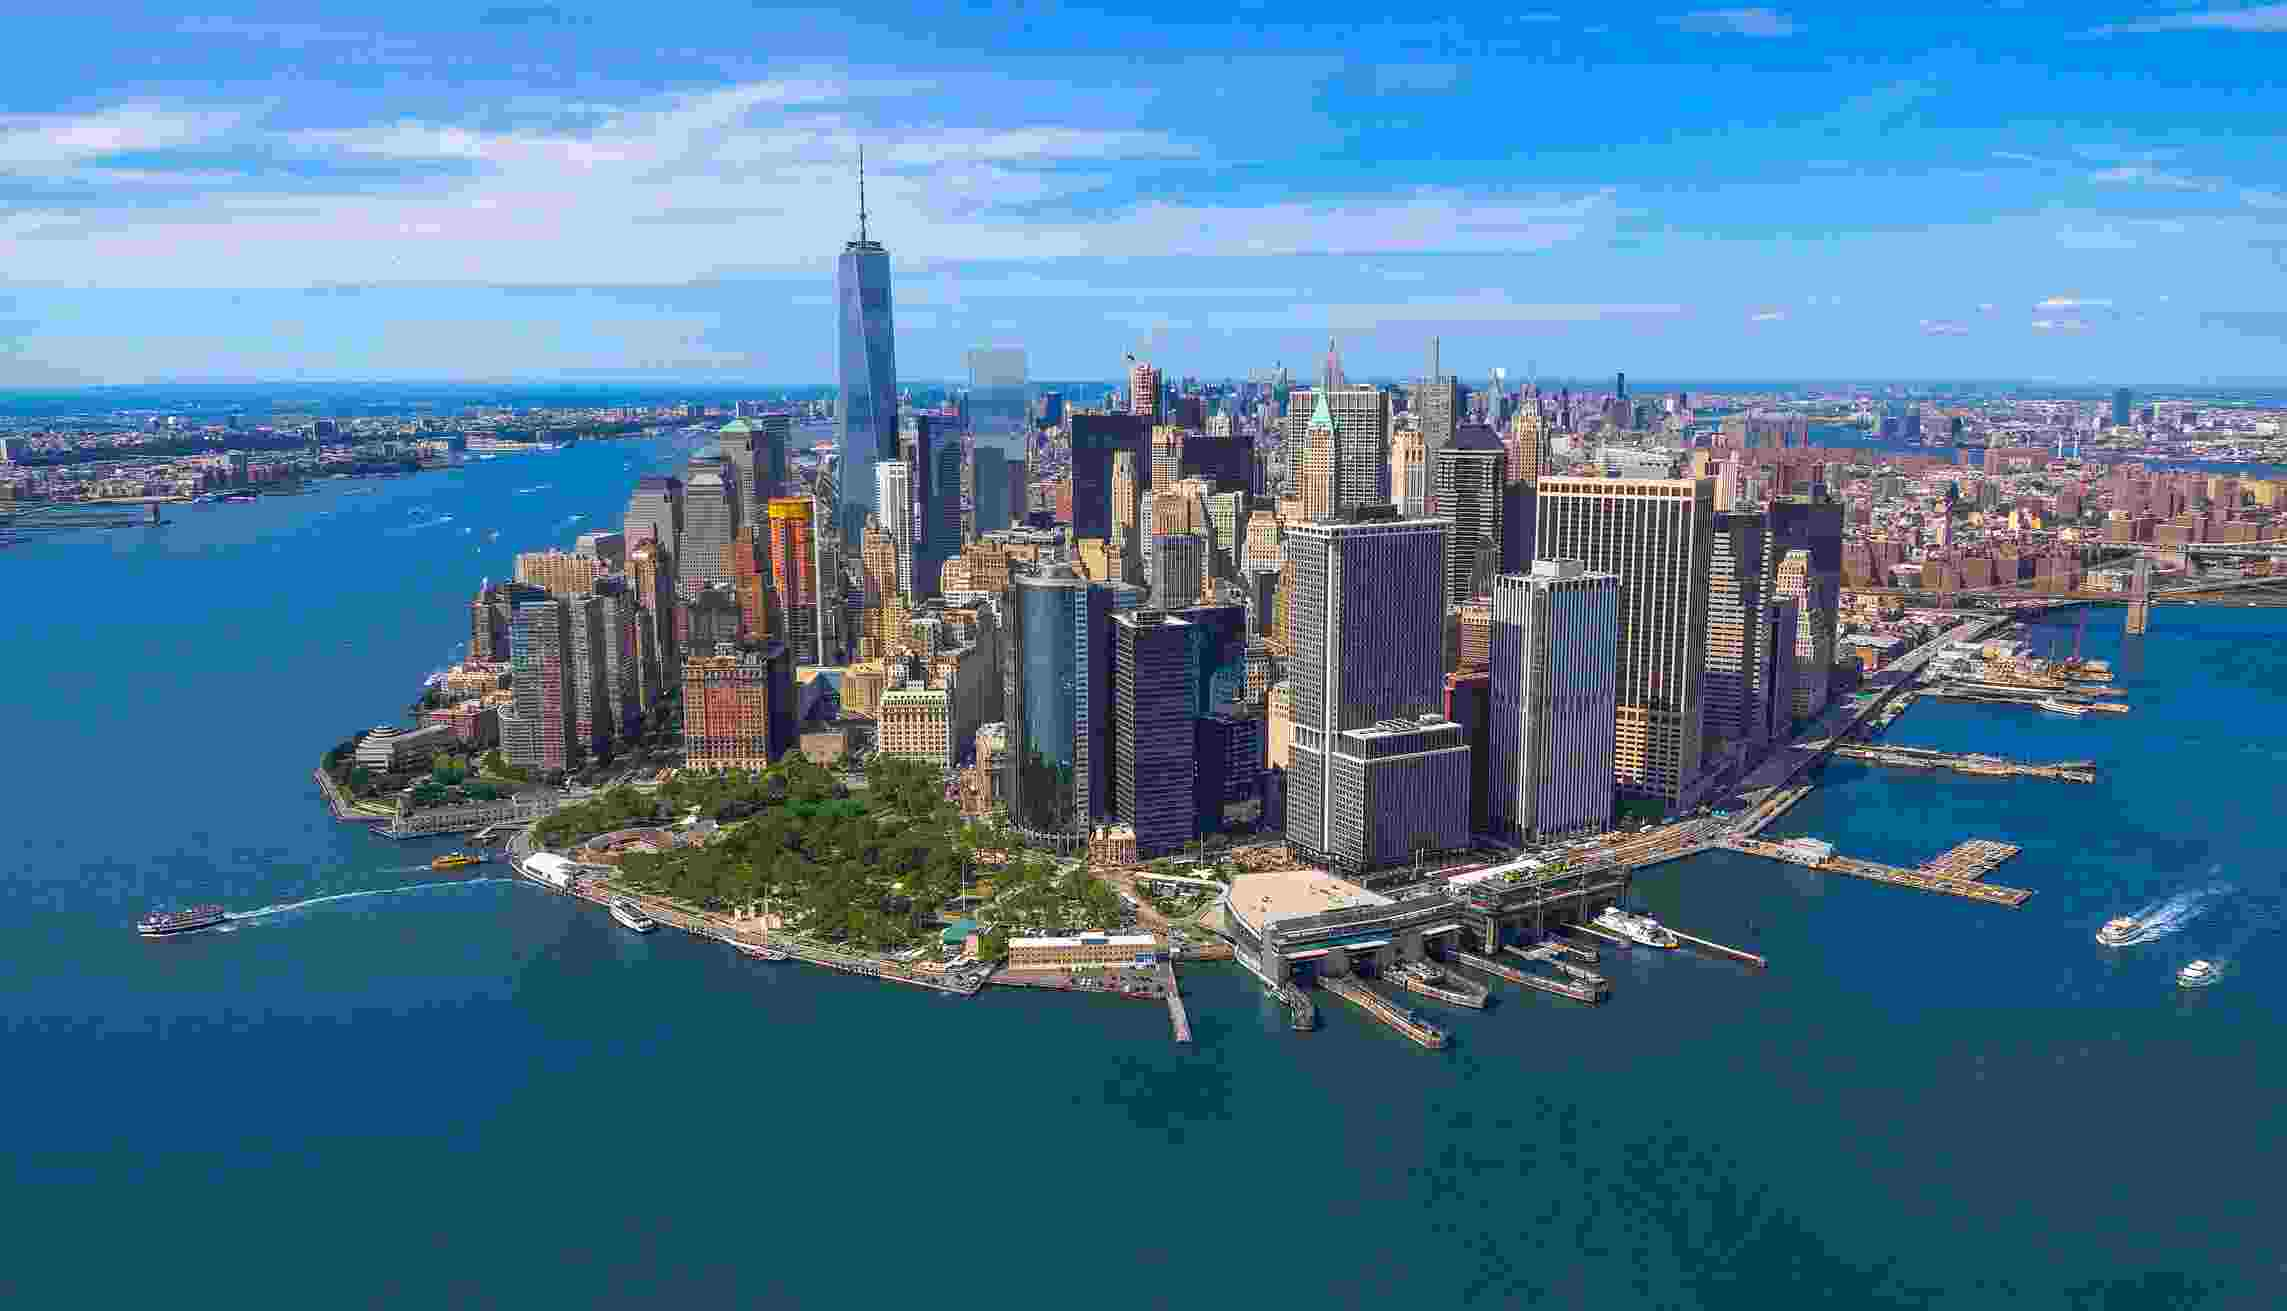 New York City Retirement adds $150 million to investment in